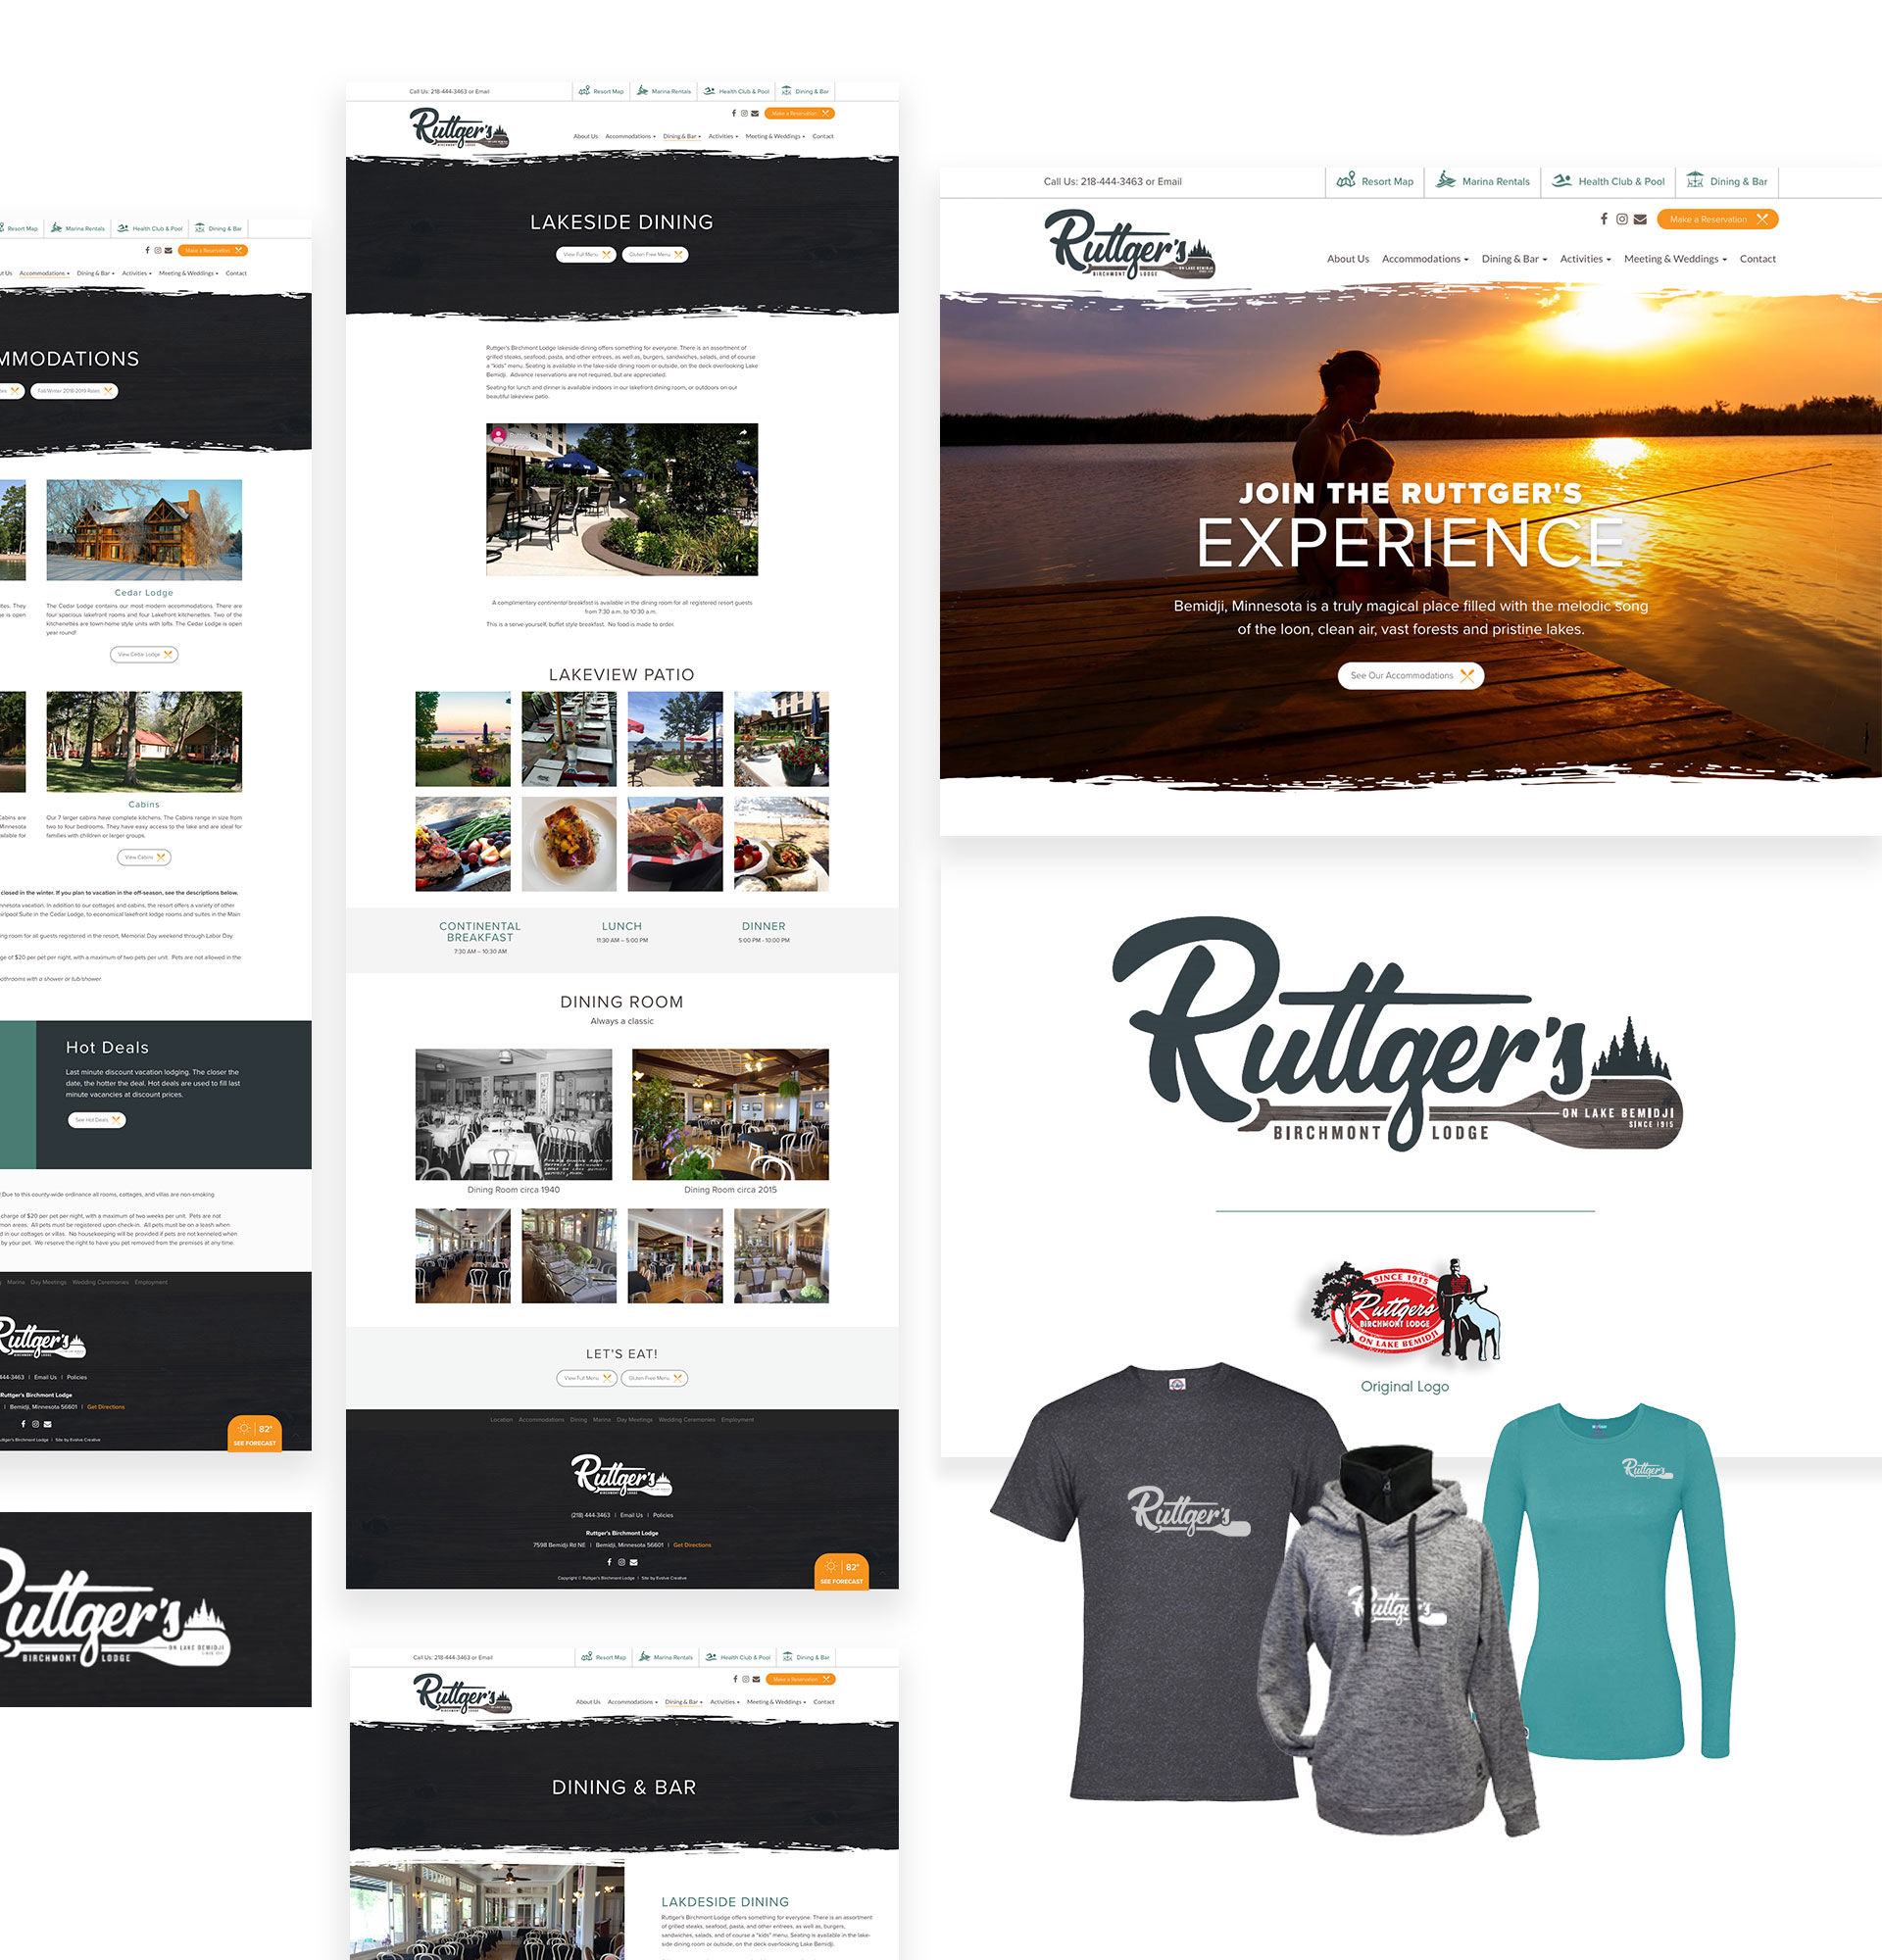 Ruttgers-Website-Panel